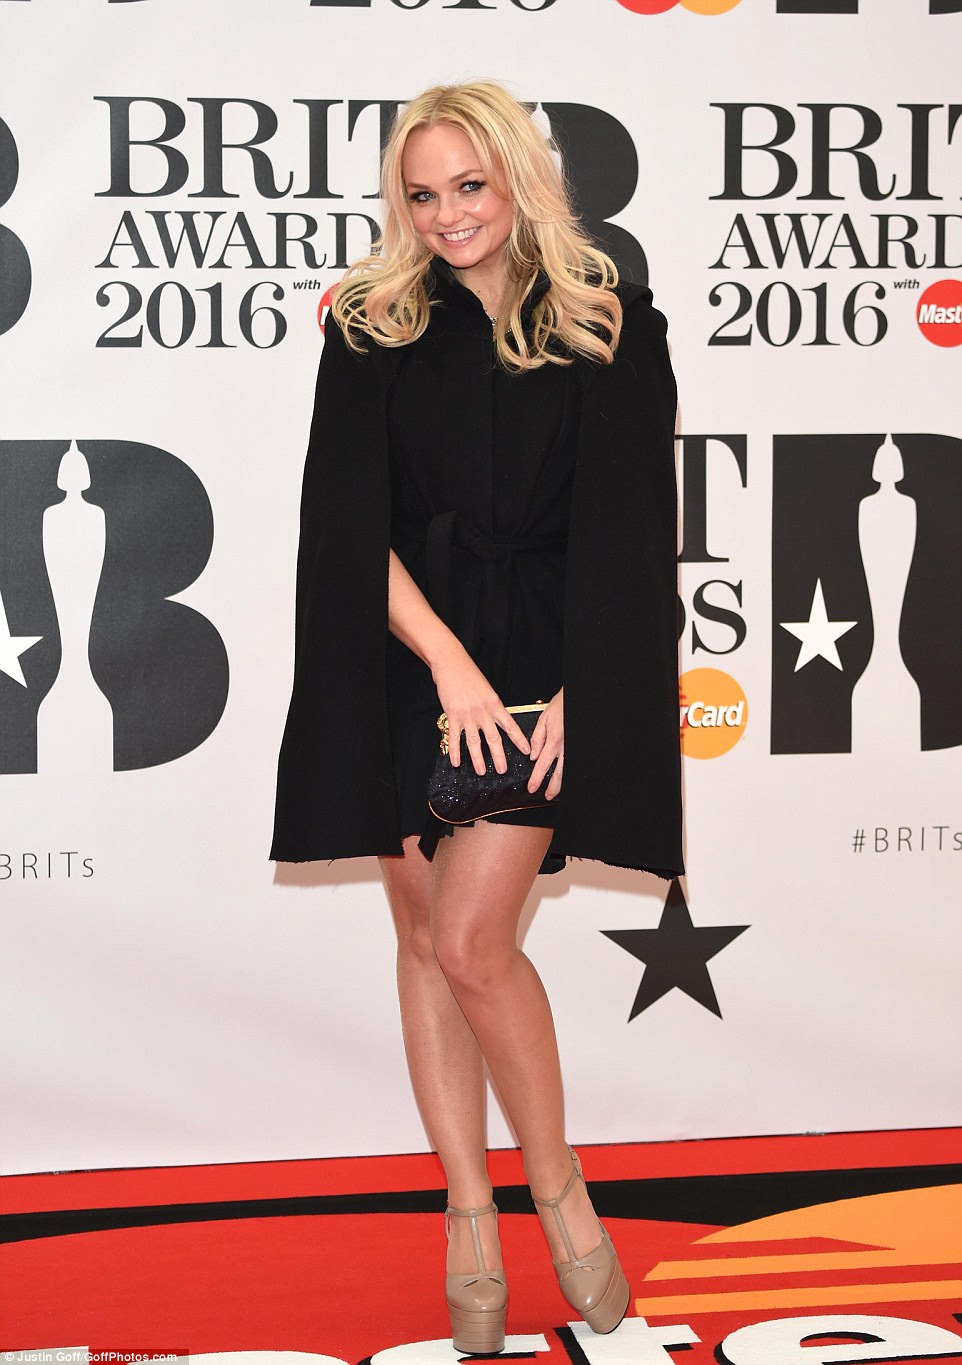 Chic Spice! Emma looked sensational and a world away from her Baby Spice days in a caped black dress and towering taupe heels